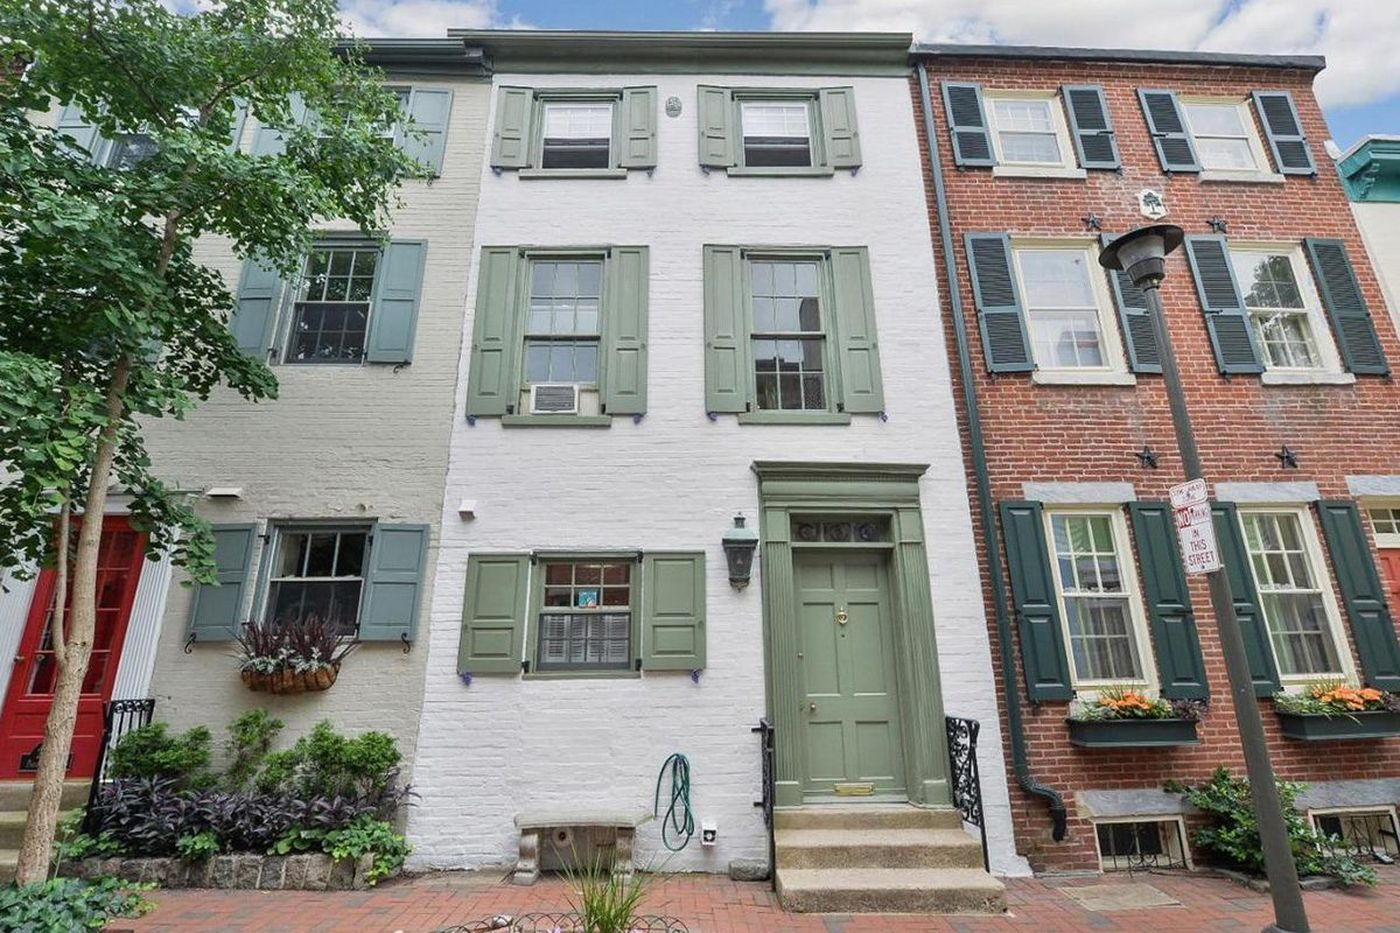 On The Market: Fitler Square home with beautiful brick garden for $825,000